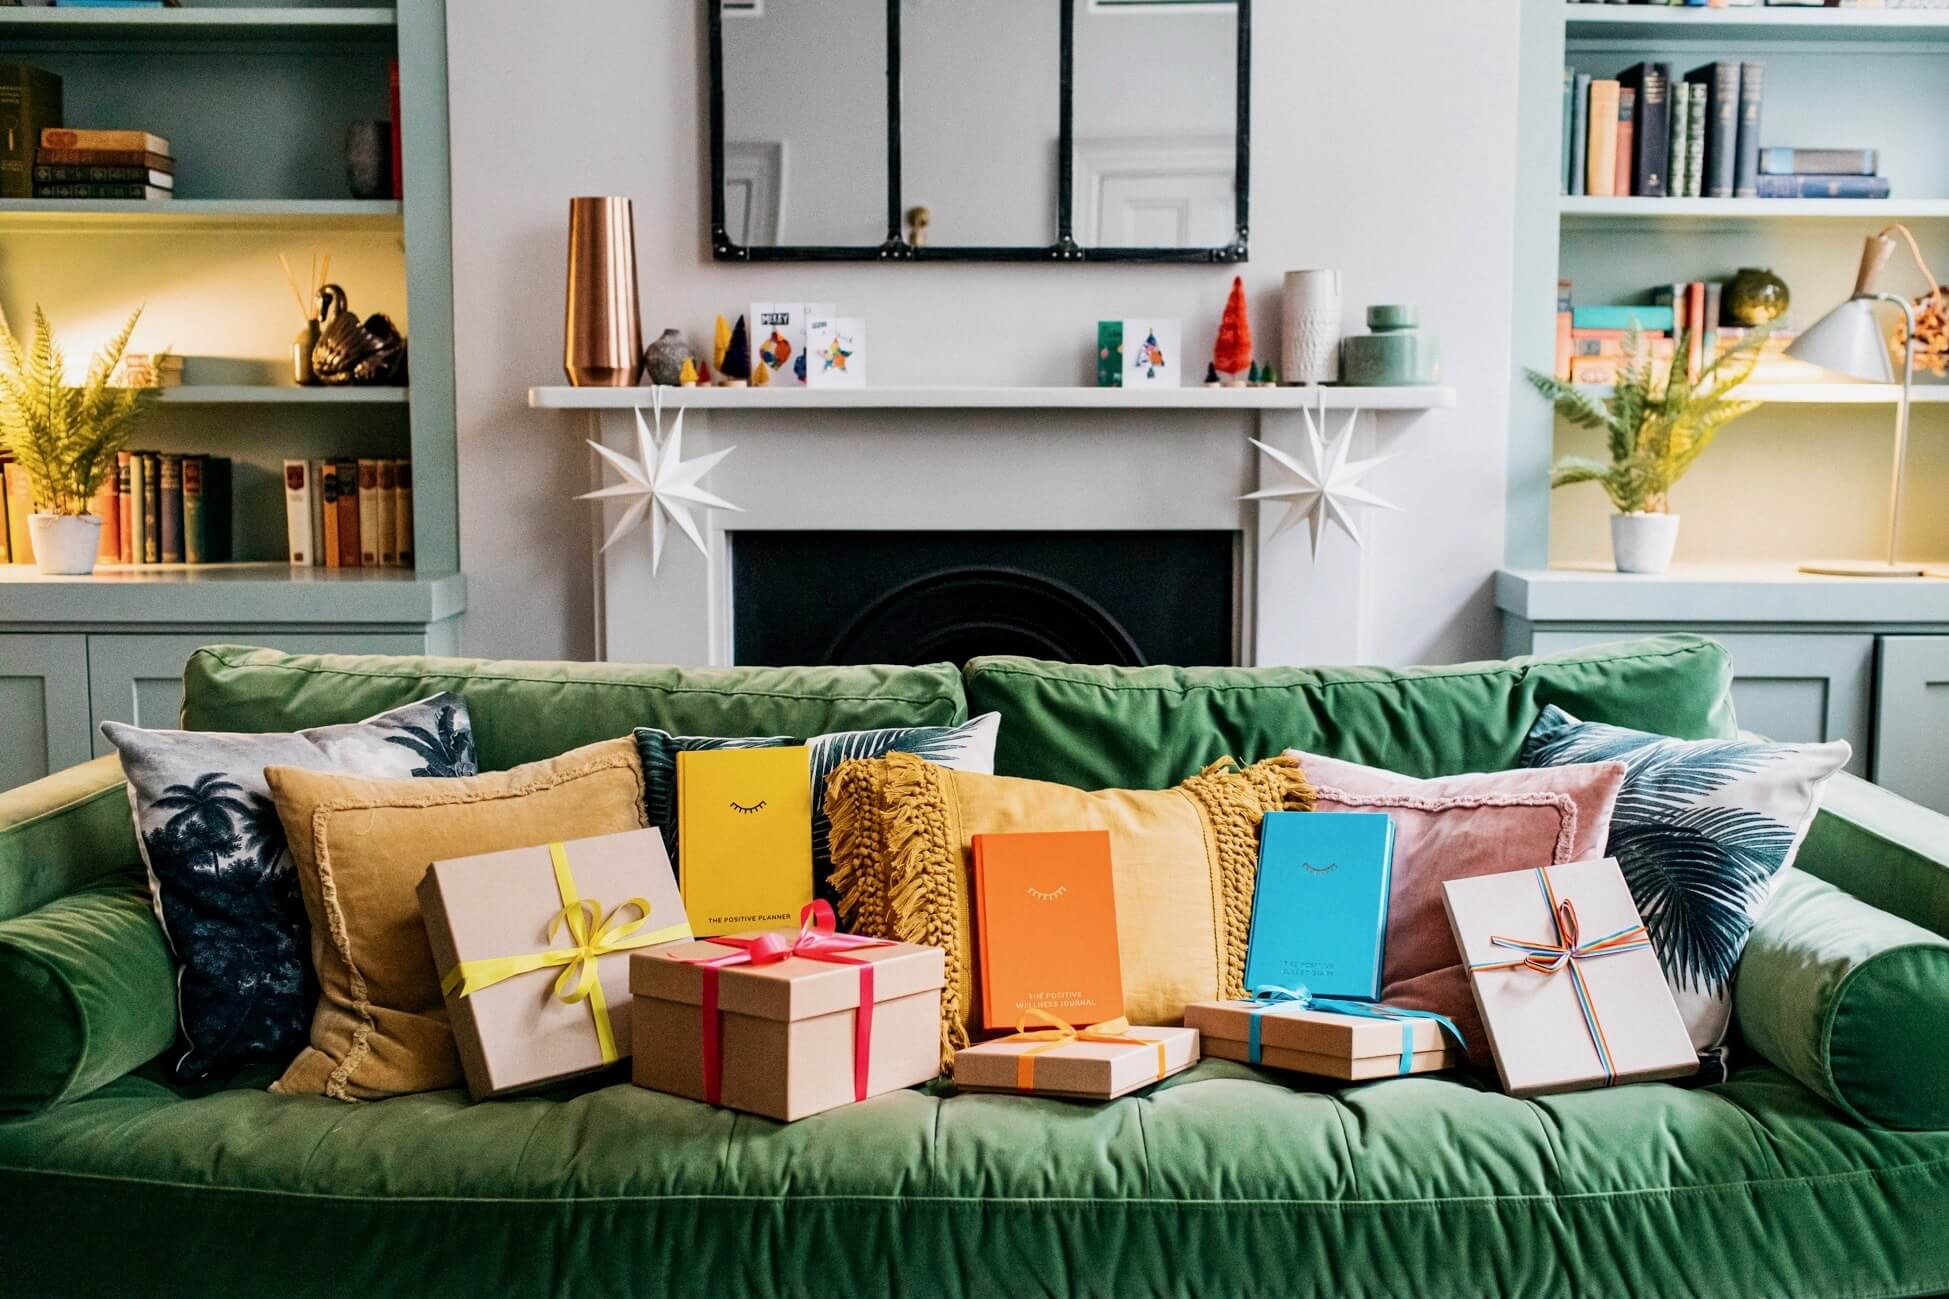 A green sofa covered in the gifts available in The Positive Planner self-care gift guide